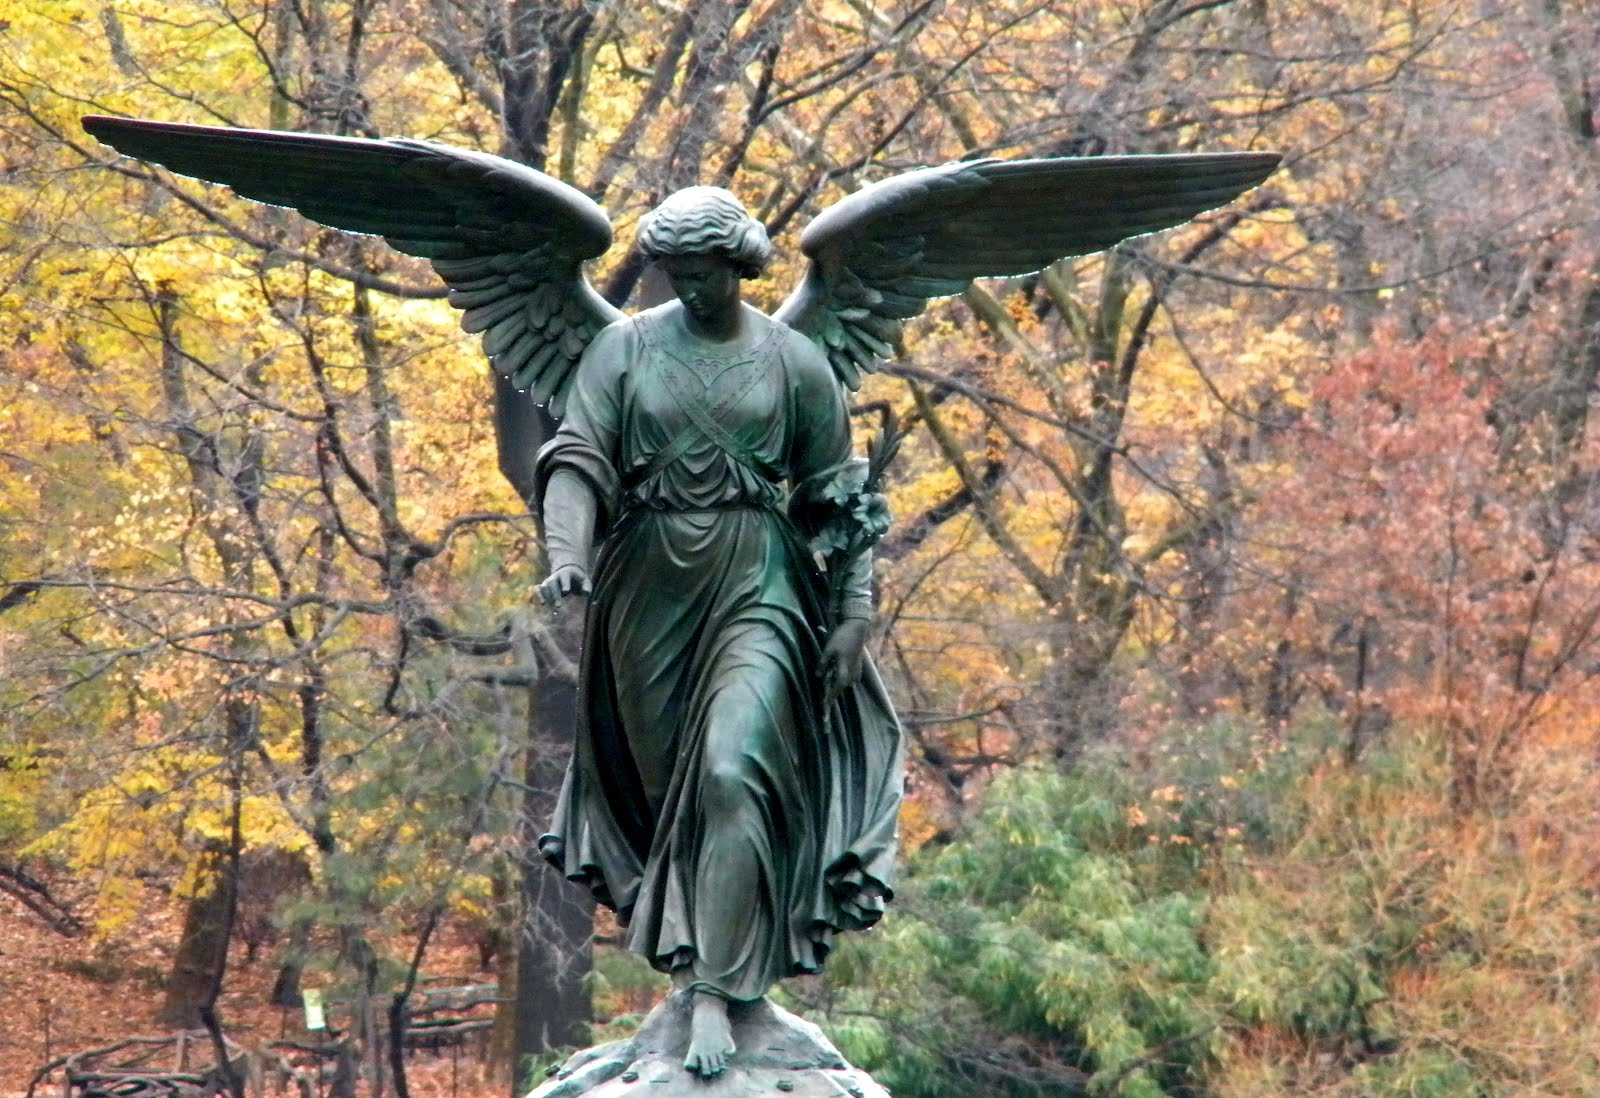 Bethesda Fountain Angel Central Park New York City